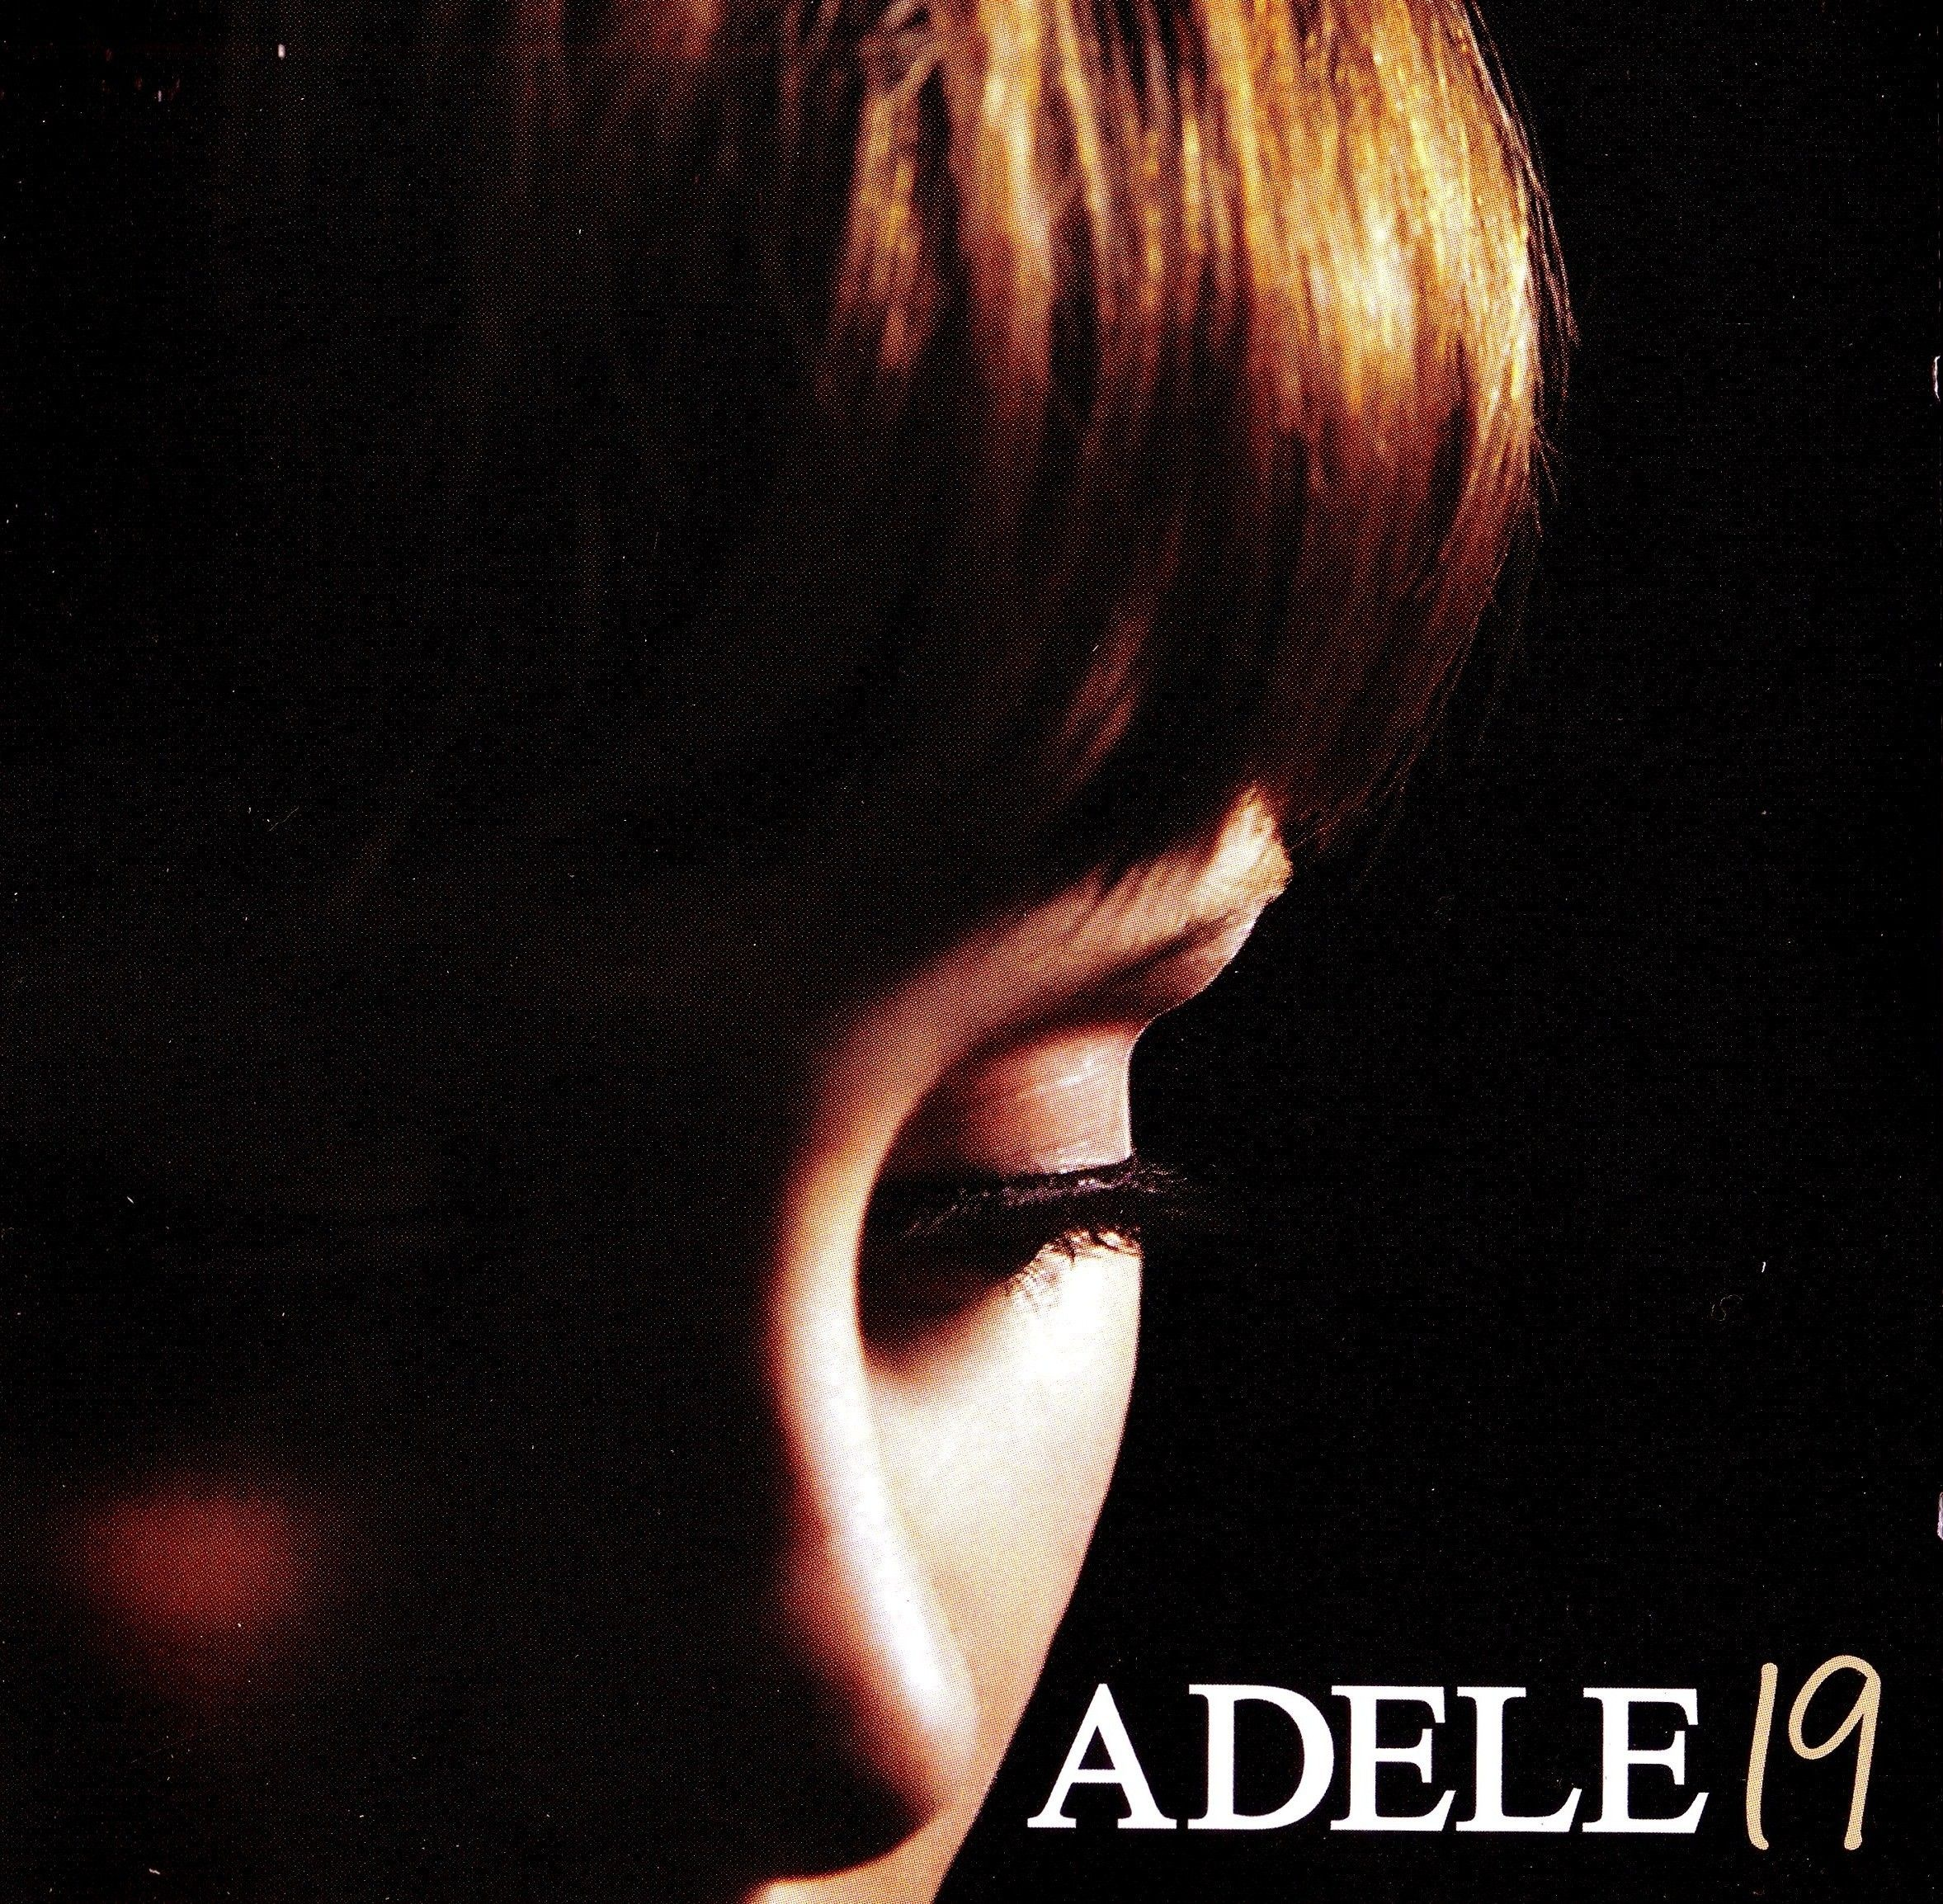 Adele - 19 album cover